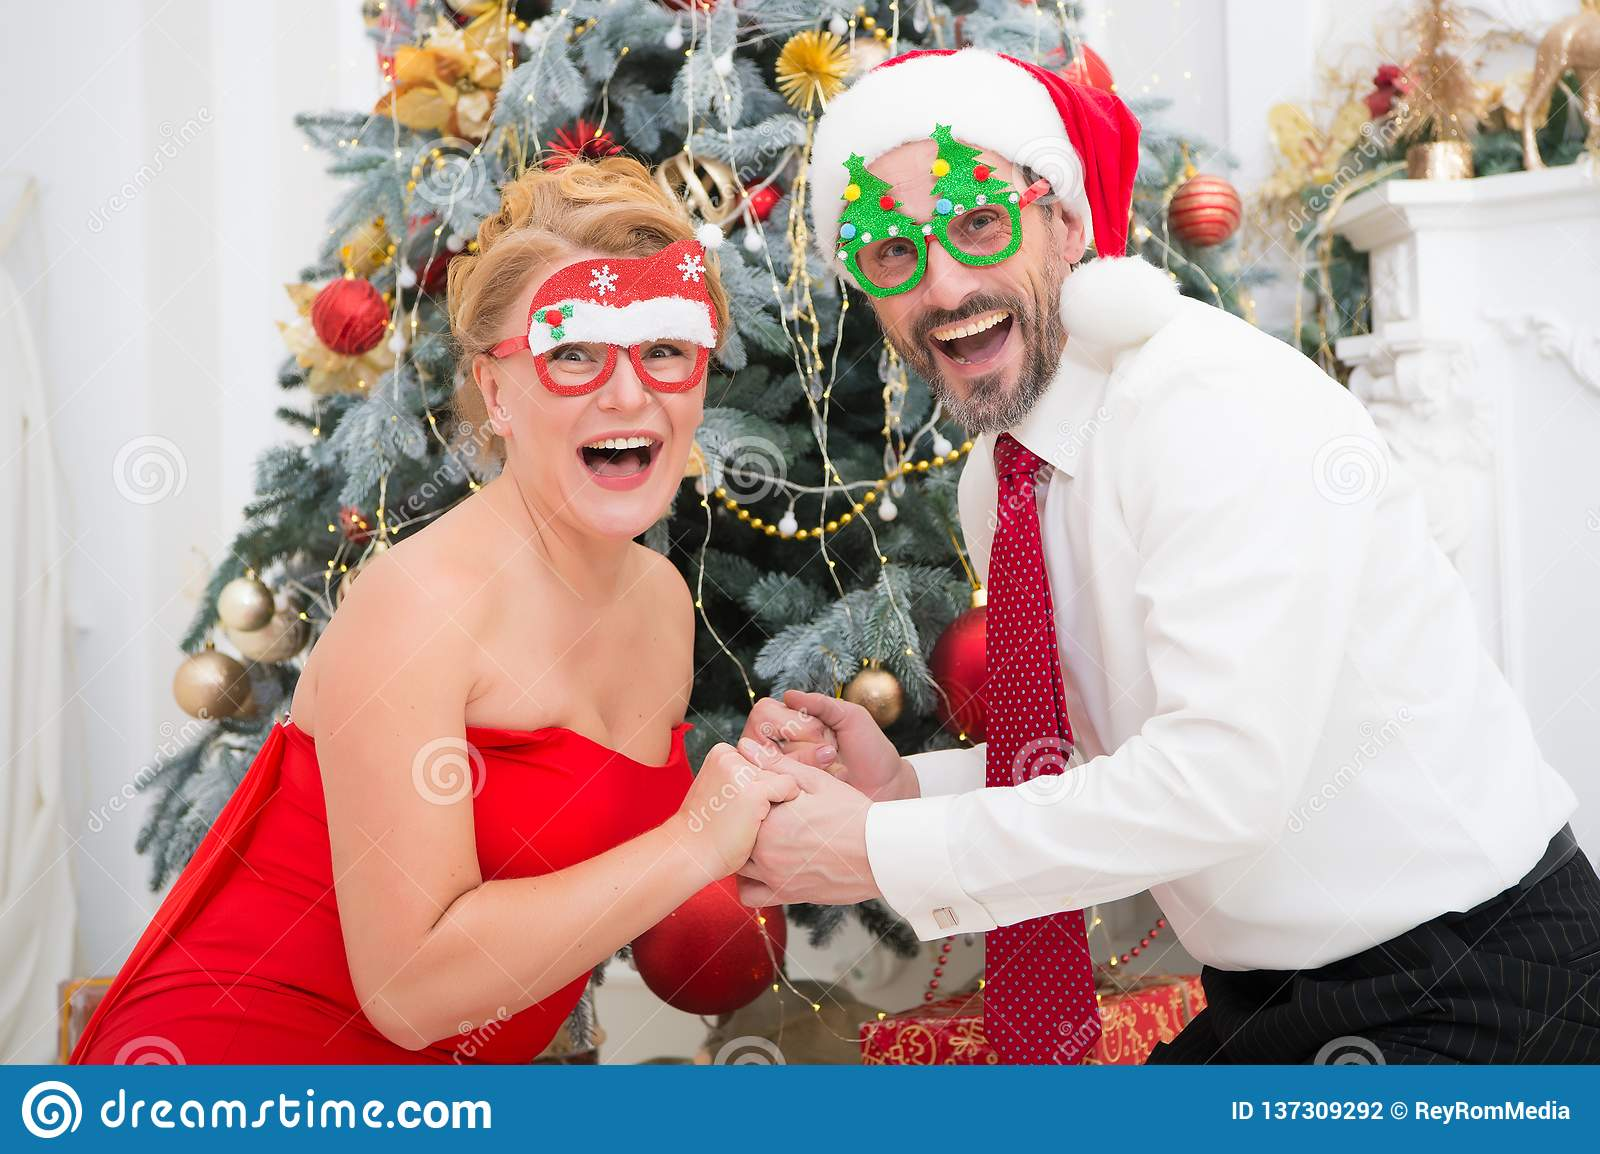 Cheerful stylish couple wearing party glasses and expressing surprise with Christmas tree on background